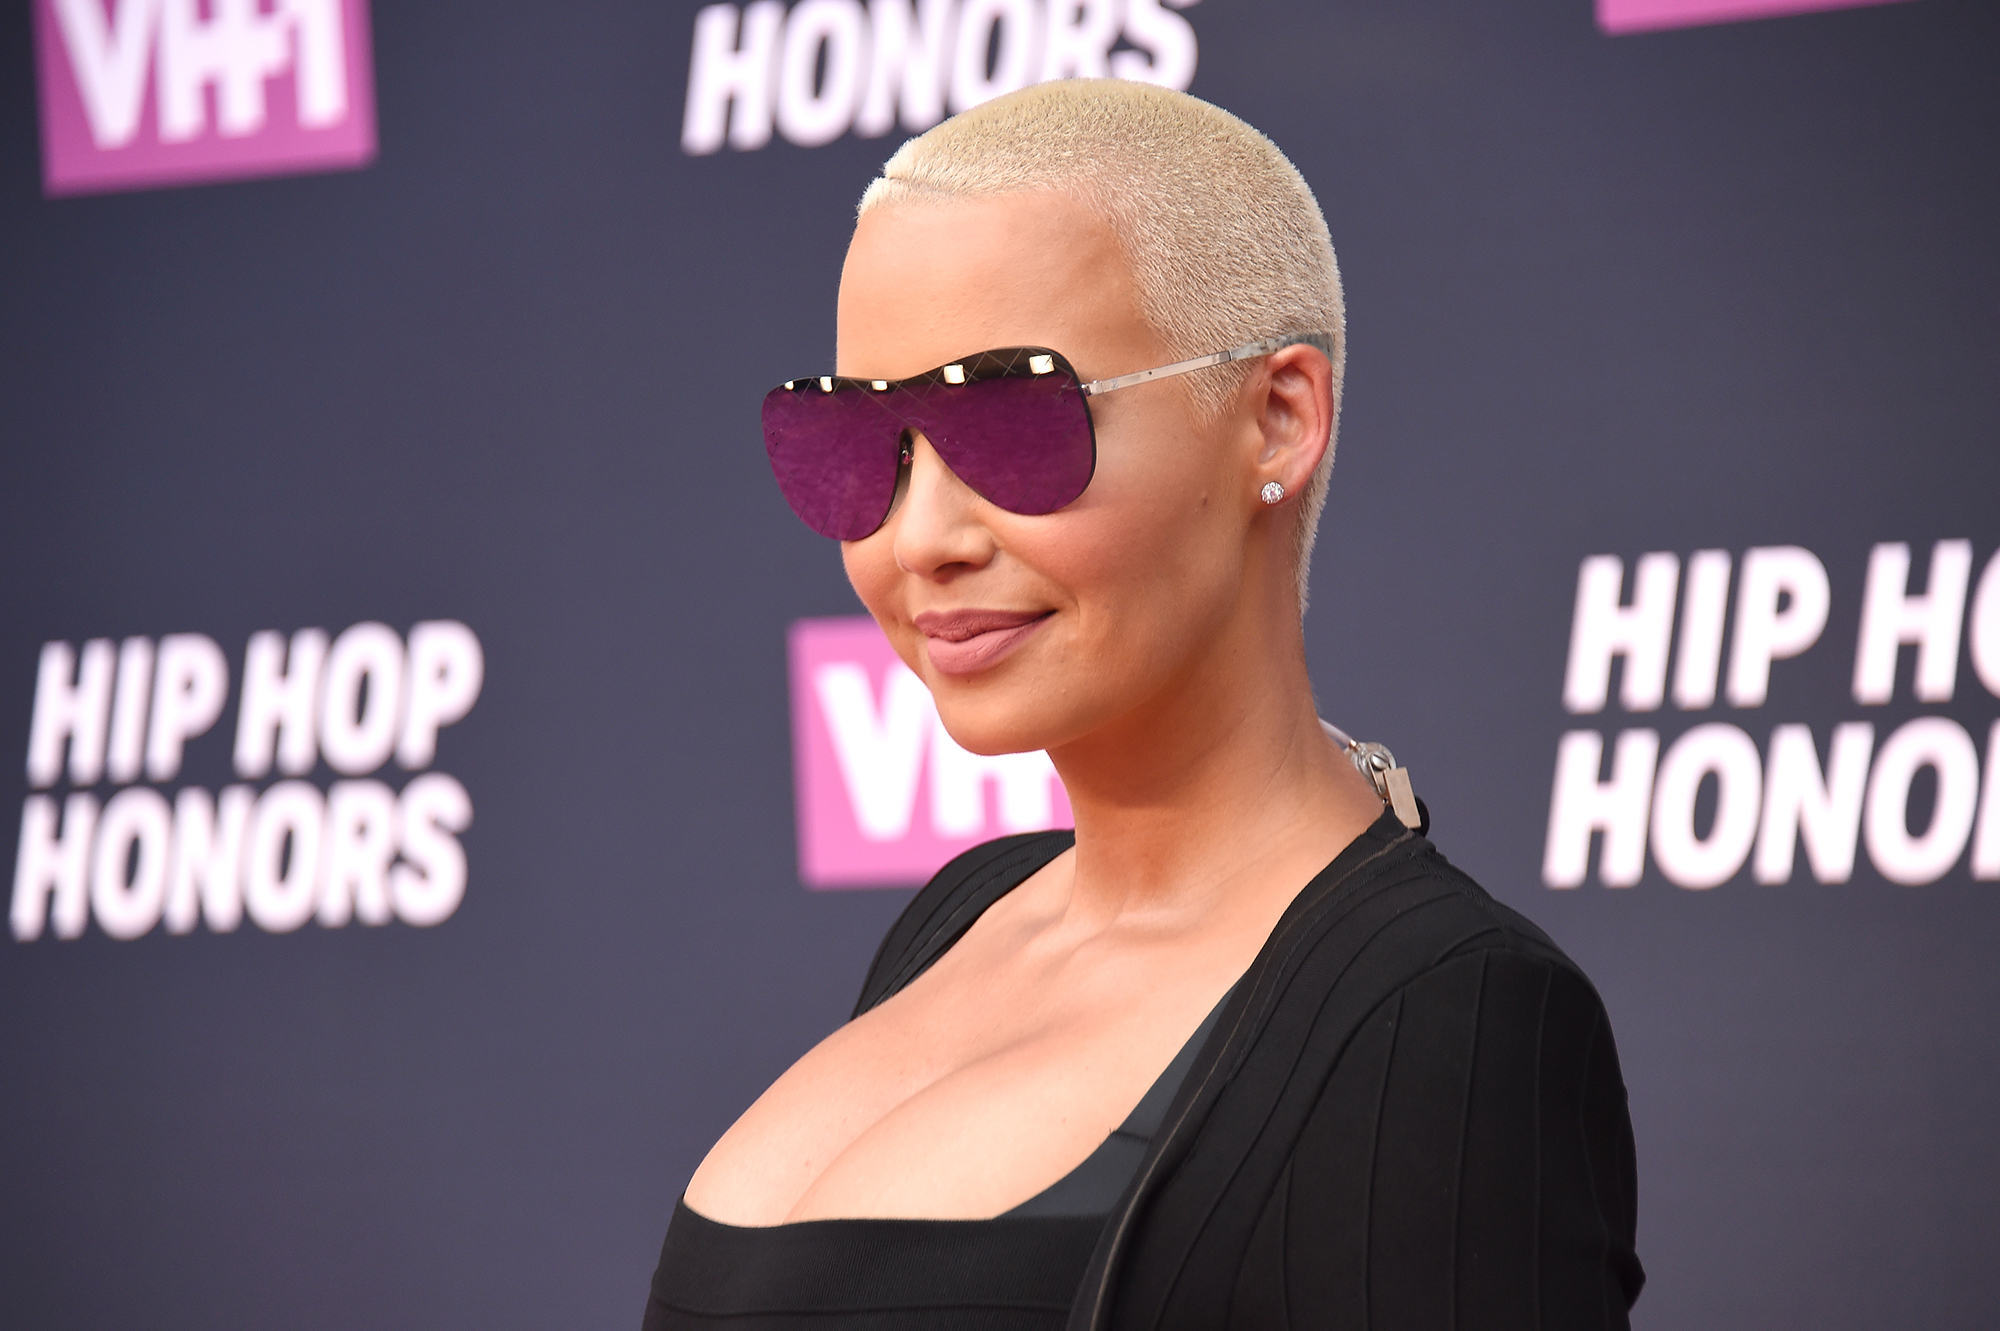 Amber Rose attends the VH1 Hip Hop Honors: All Hail The Queens at David Geffen Hall on July 11, 2016 in New York City.  (Photo by Nicholas Hunt/Getty Images for VH1)